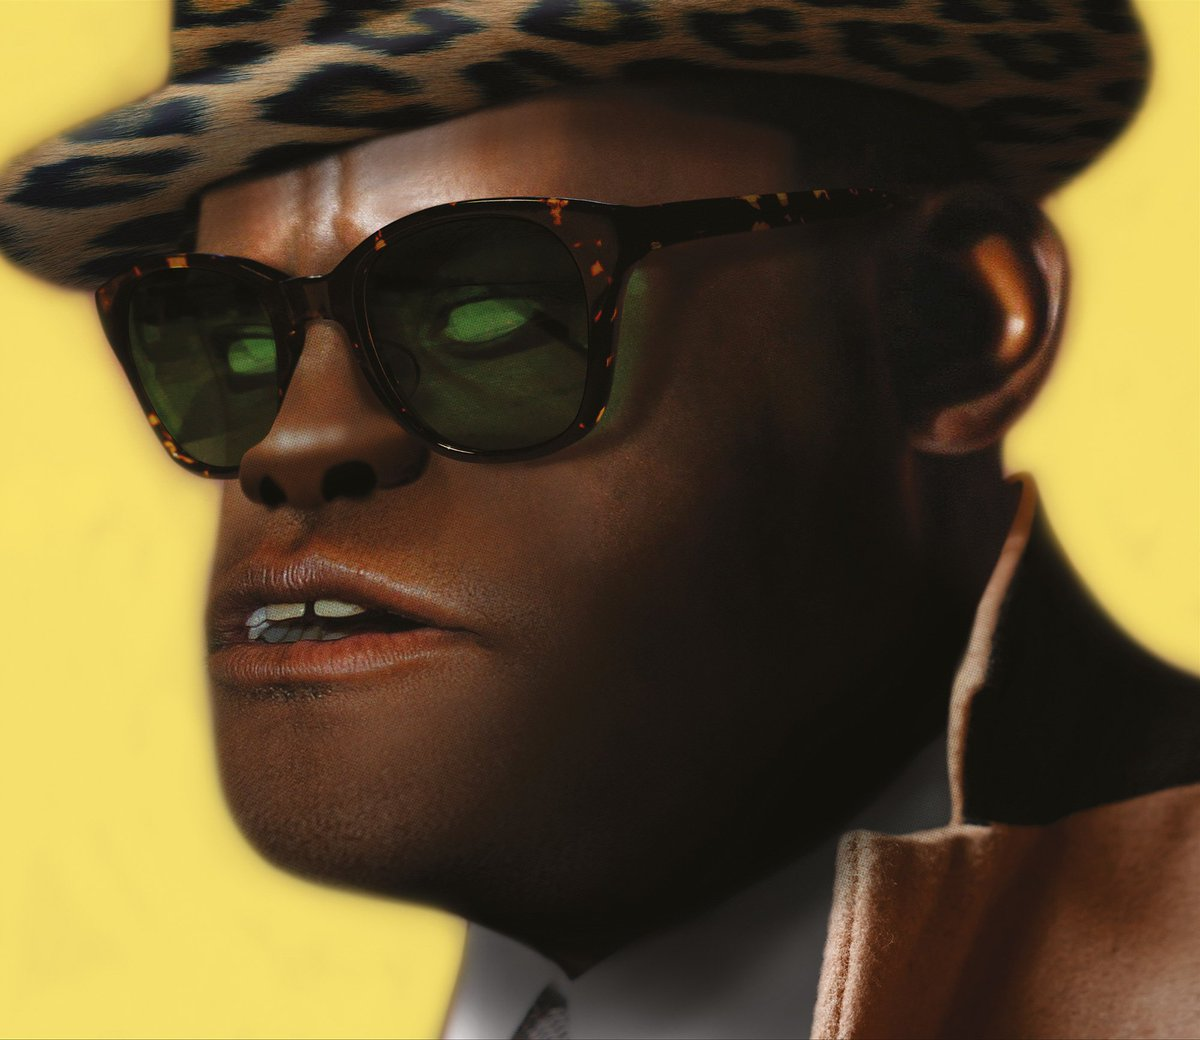 #RusselHobbs #Humanz https://t.co/XlZFIgPeuf